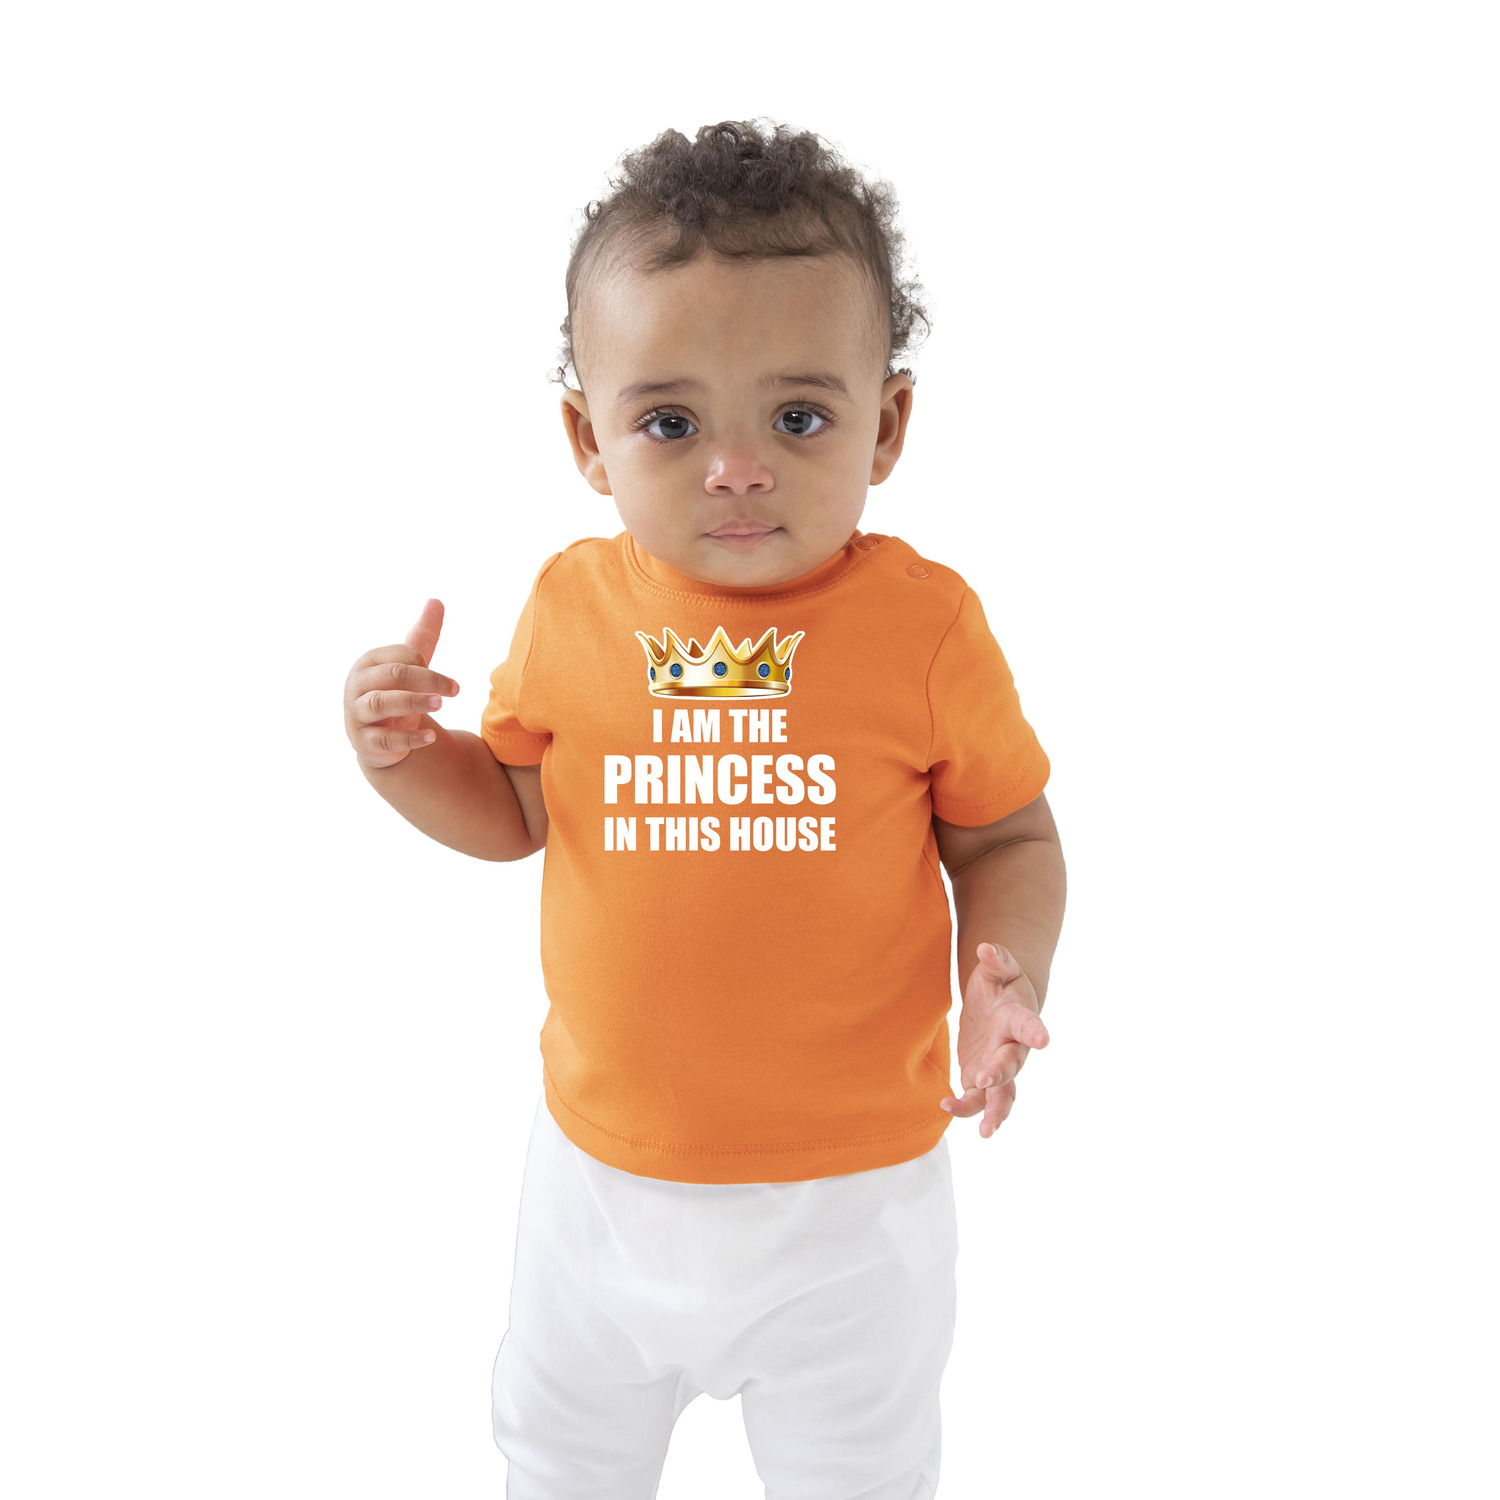 I am the princess in this house Koningsdag t-shirt oranje baby/peuter voor meisjes